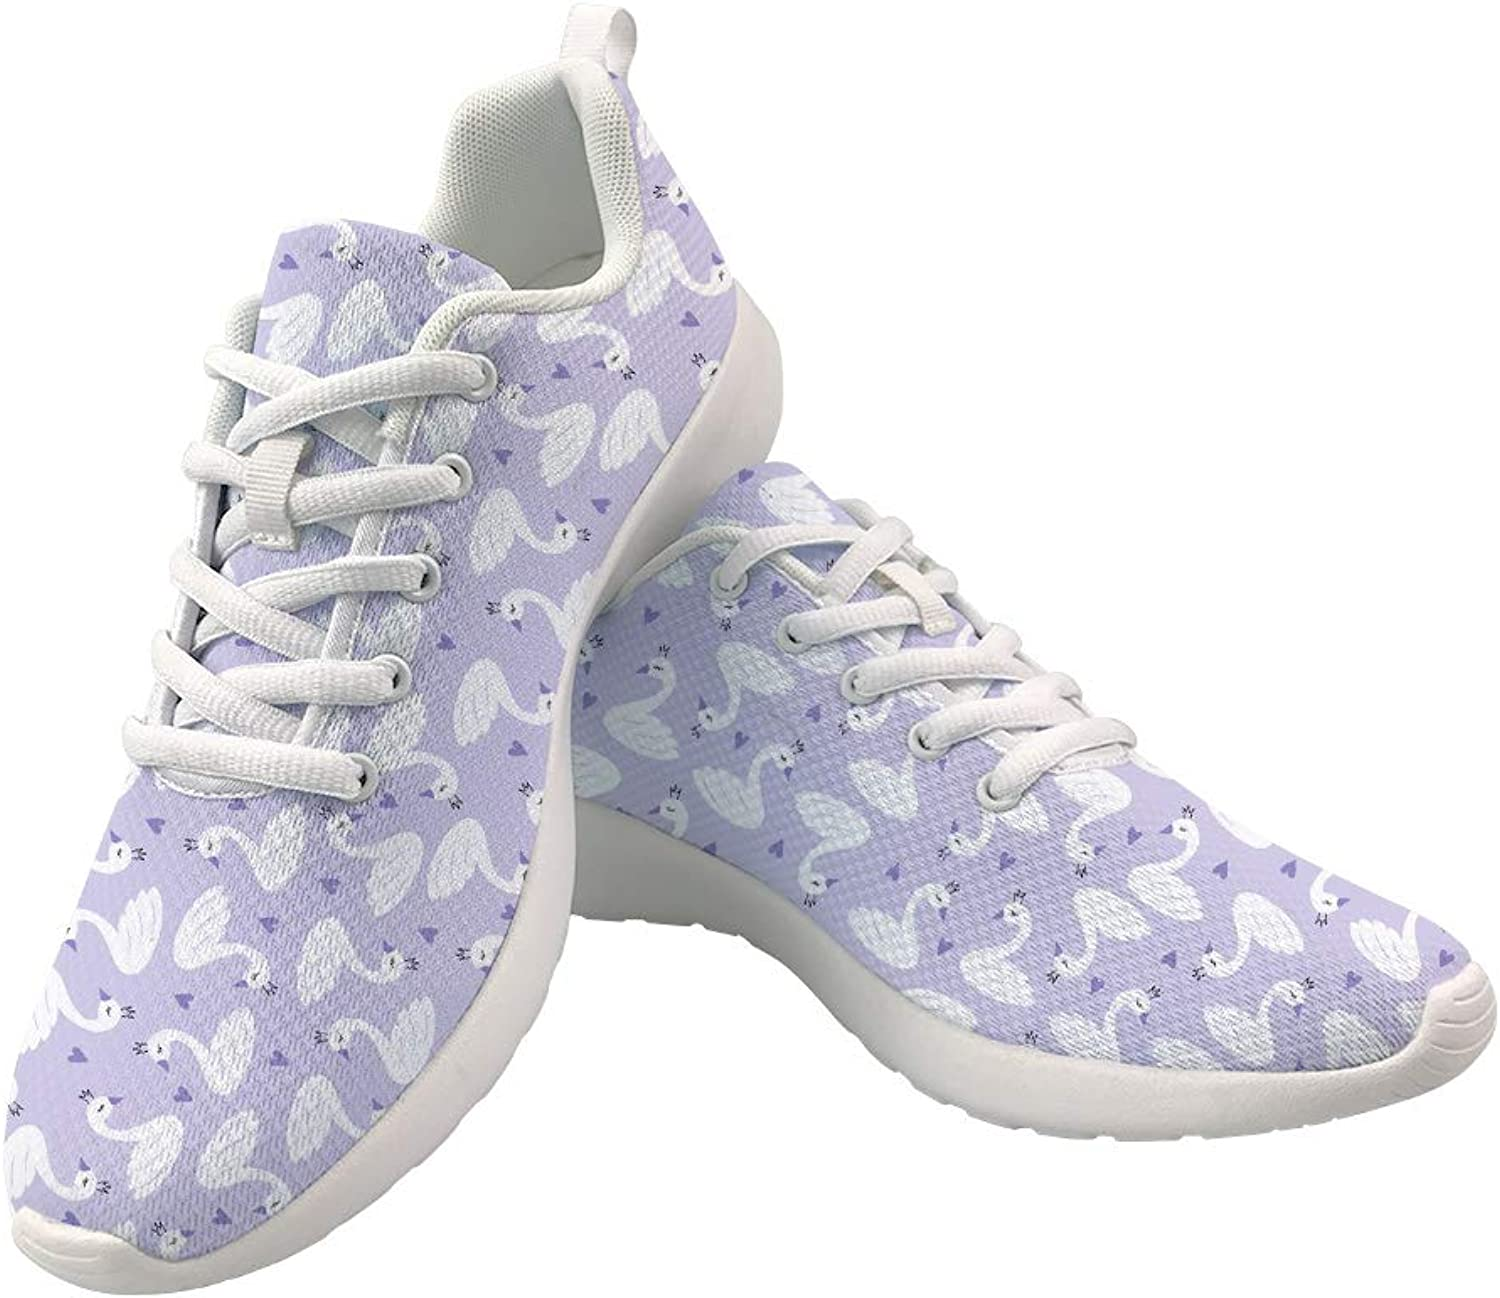 WHEREISART Cute Sneakers Women shoes Light Weight and Breathable Running shoes Unusual and Unique Print Girls shoes Size 6-11